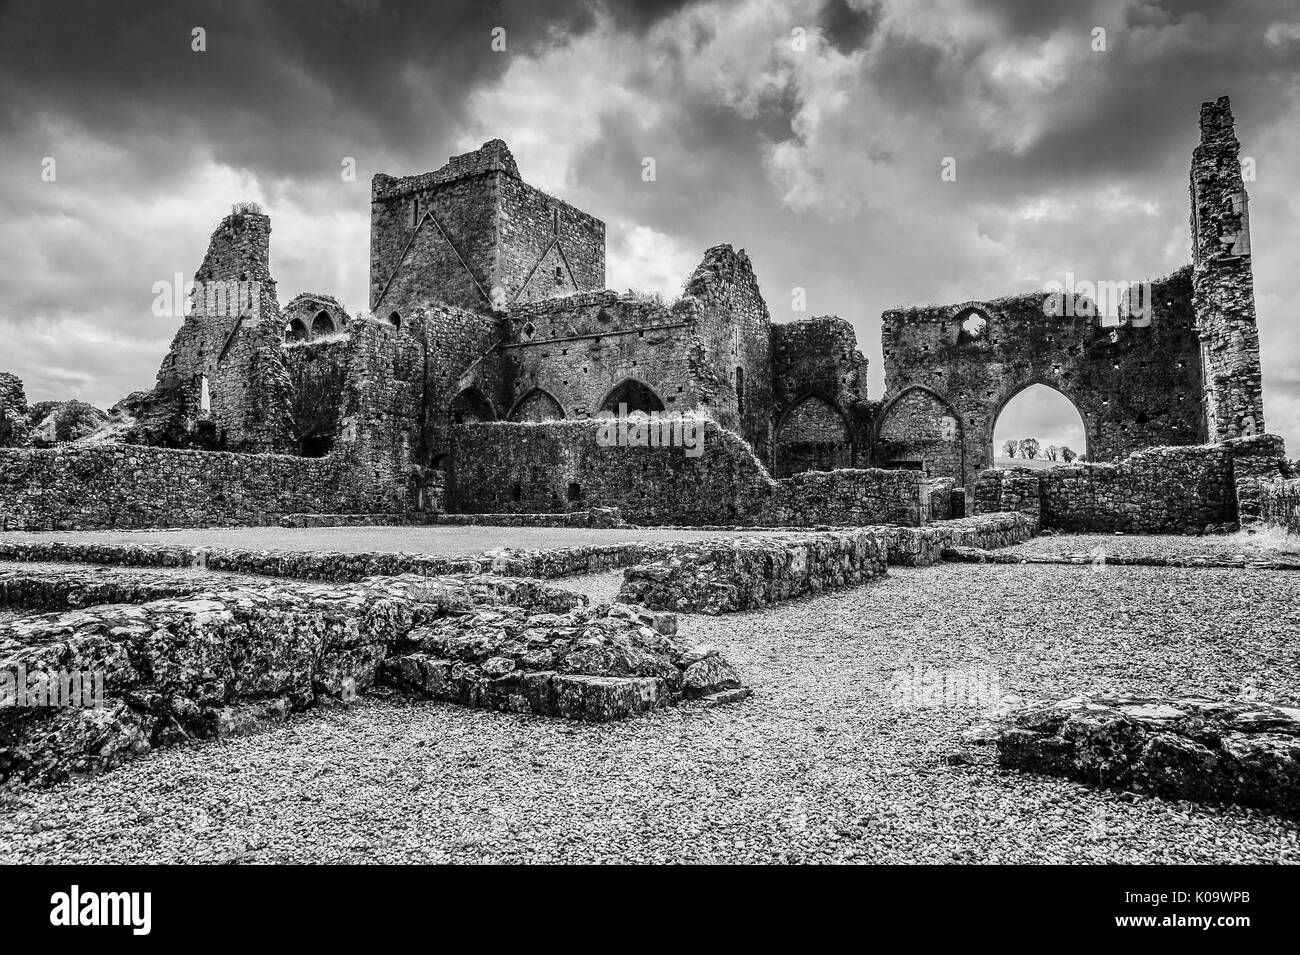 High contrast black and white image of the ruins of Hore Abbey, Cashel, county Tipperary, Ireland - Stock Image